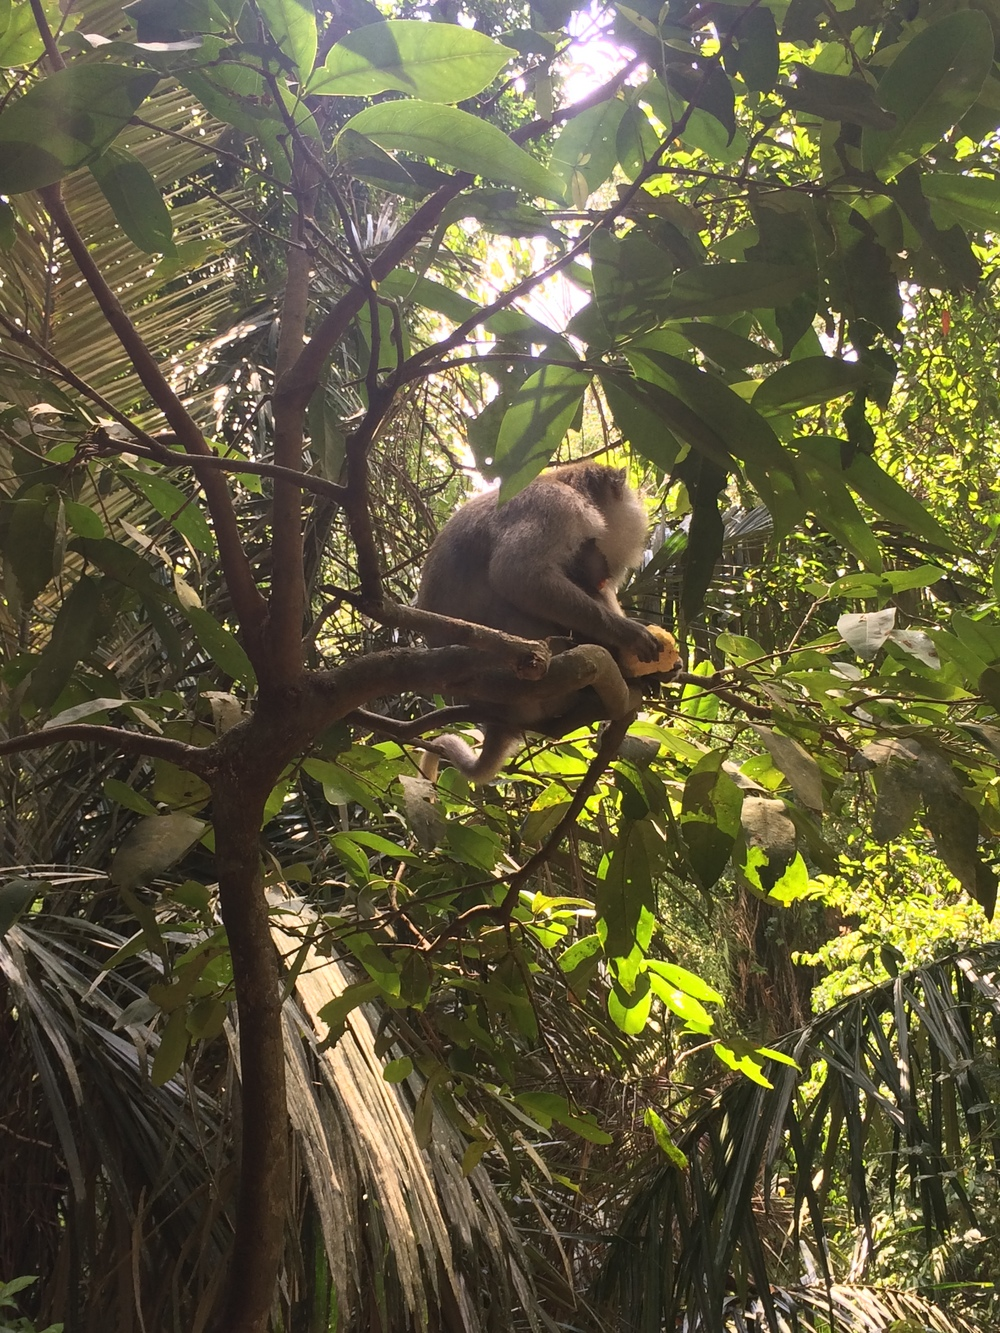 Monkeys in the forest!